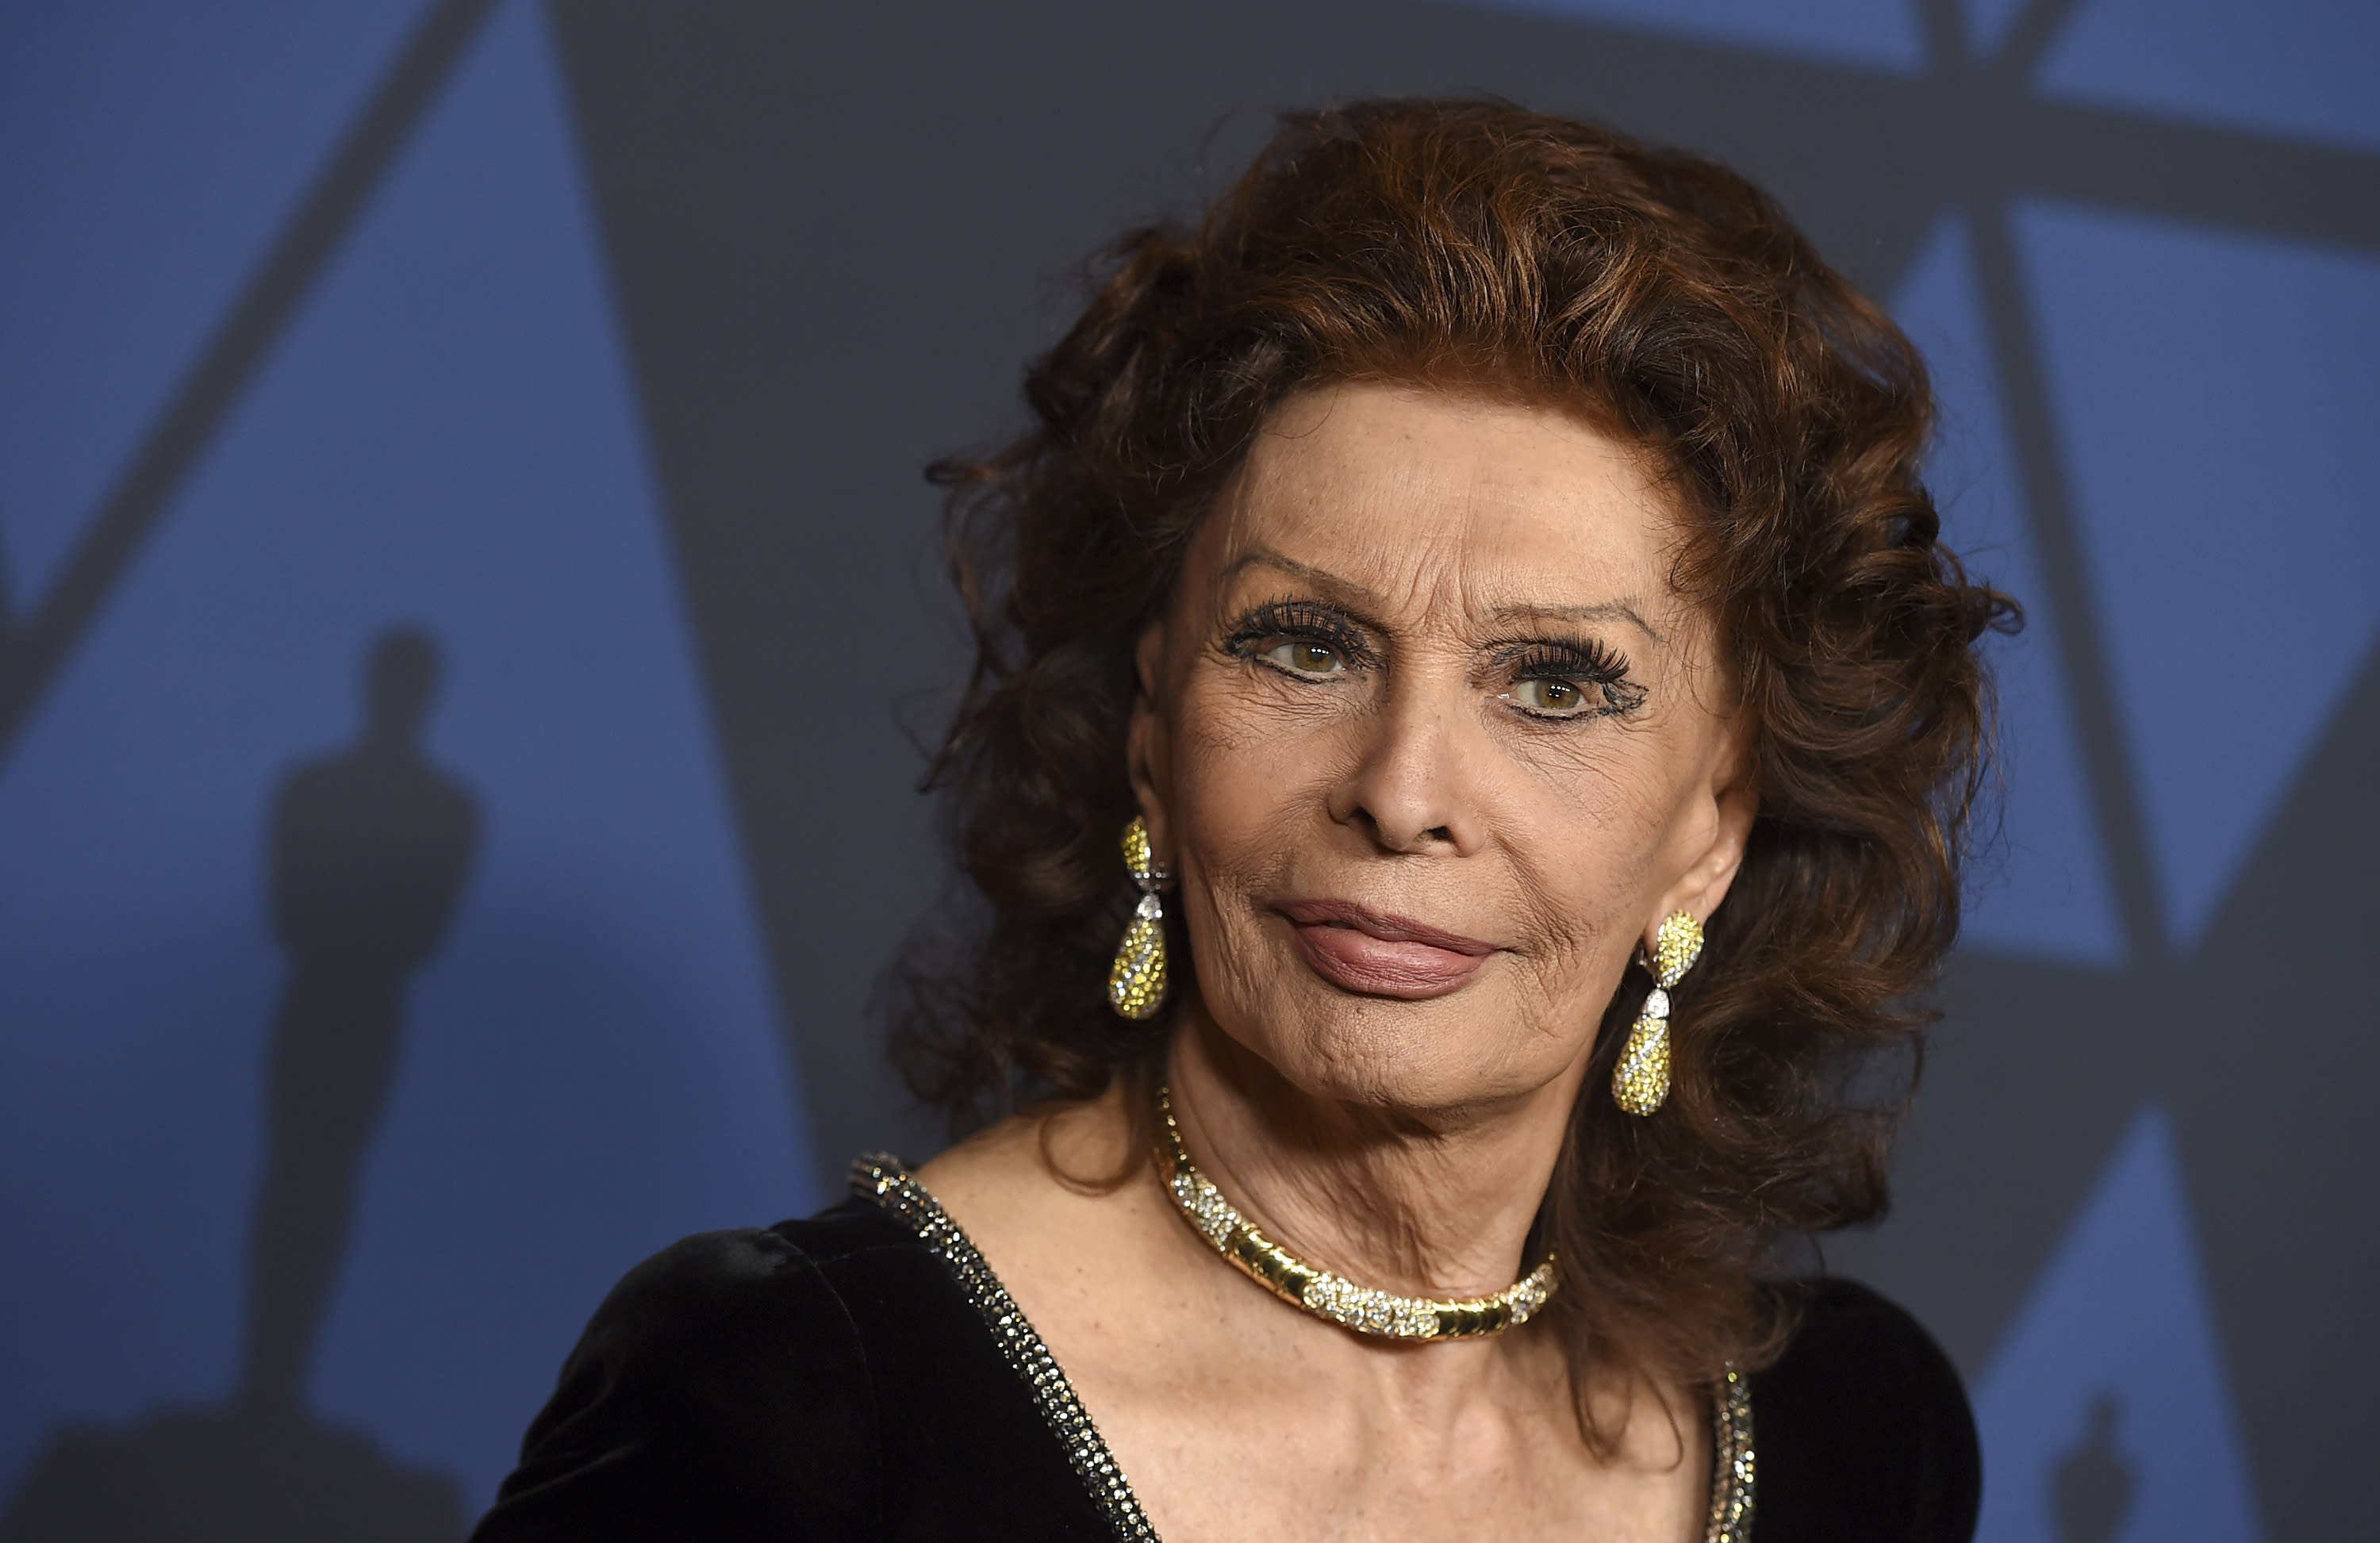 FILE - Sophia Loren arrives at the Governors Awards on Oct. 27, 2019 in Los Angeles. Loren turns 86 on Sept. 20. (Photo by Jordan Strauss/Invision/AP, File)